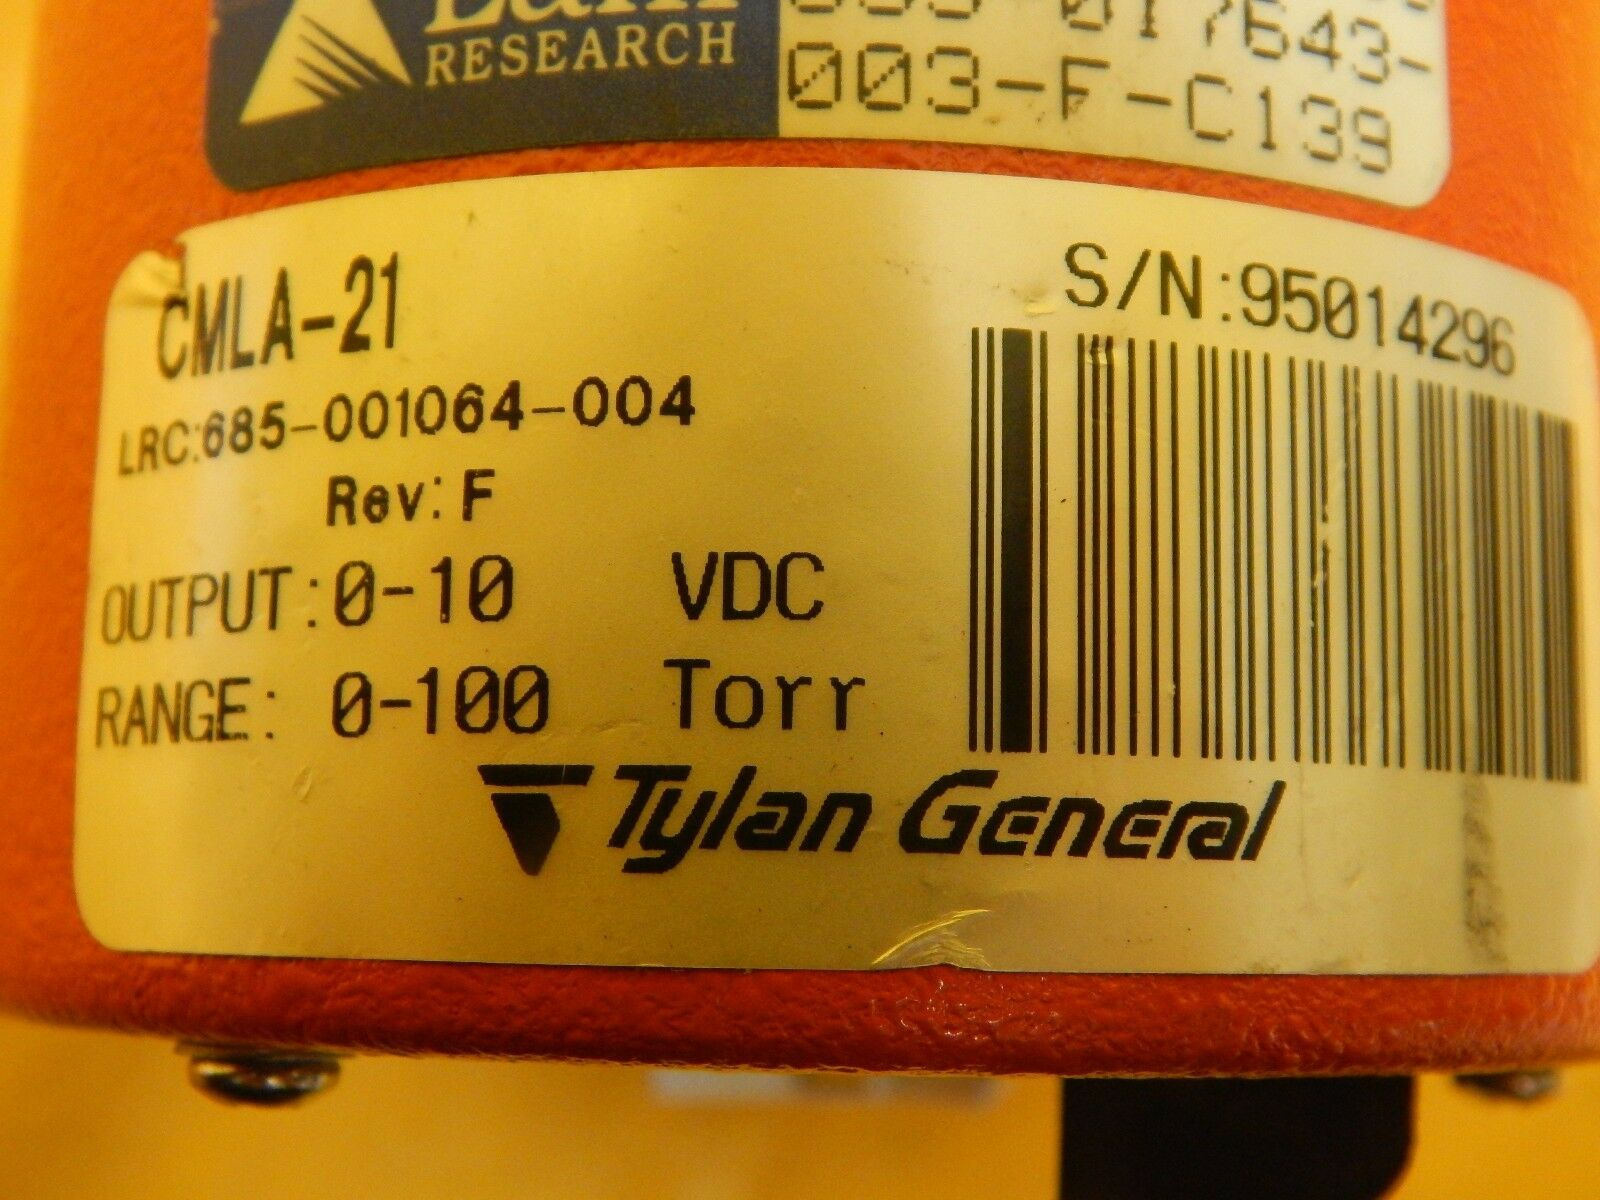 Tylan General CMLA-21 Baratron Lam 853-017643-003-F-C139 Used Tested Working